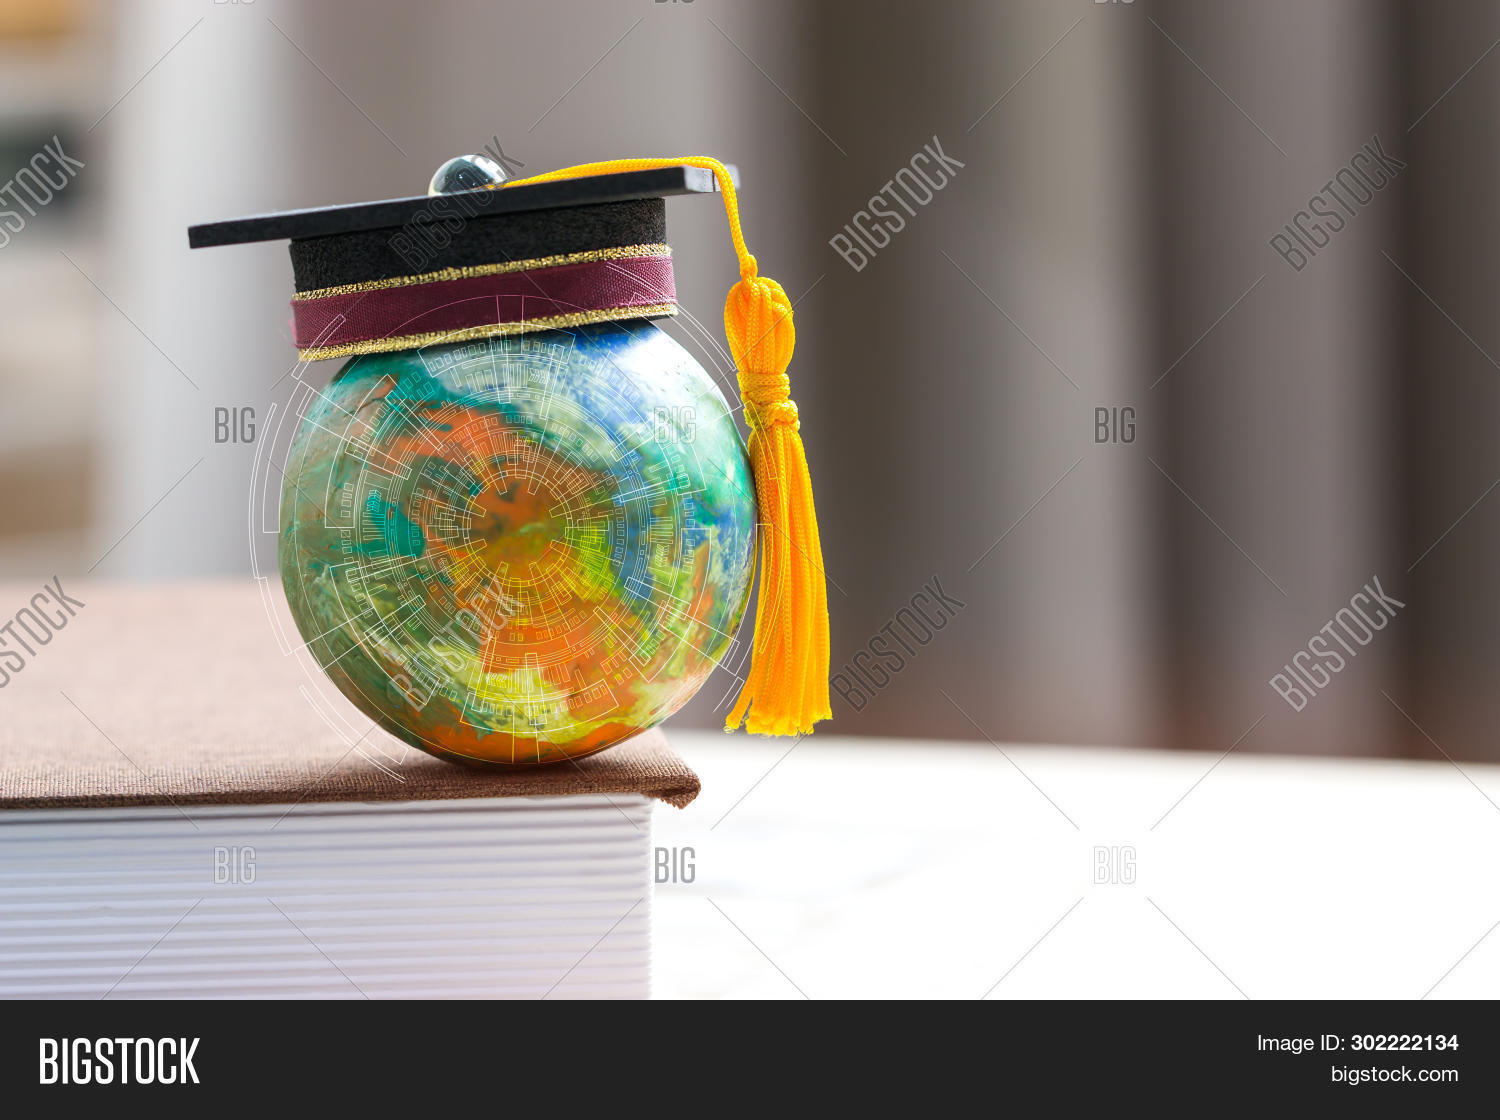 abroad,academic,academy,back,background,book,business,cap,ceremony,classroom,college,concept,degree,diploma,earth,educ,educate,education,educational,environment,exam,global,graduate,graduating,graduation,international,knowledge,learn,learning,library,literacy,literature,map,master,mortarboard,nature,planet,radar,scholarship,school,student,study,success,teacher,test,travel,university,world